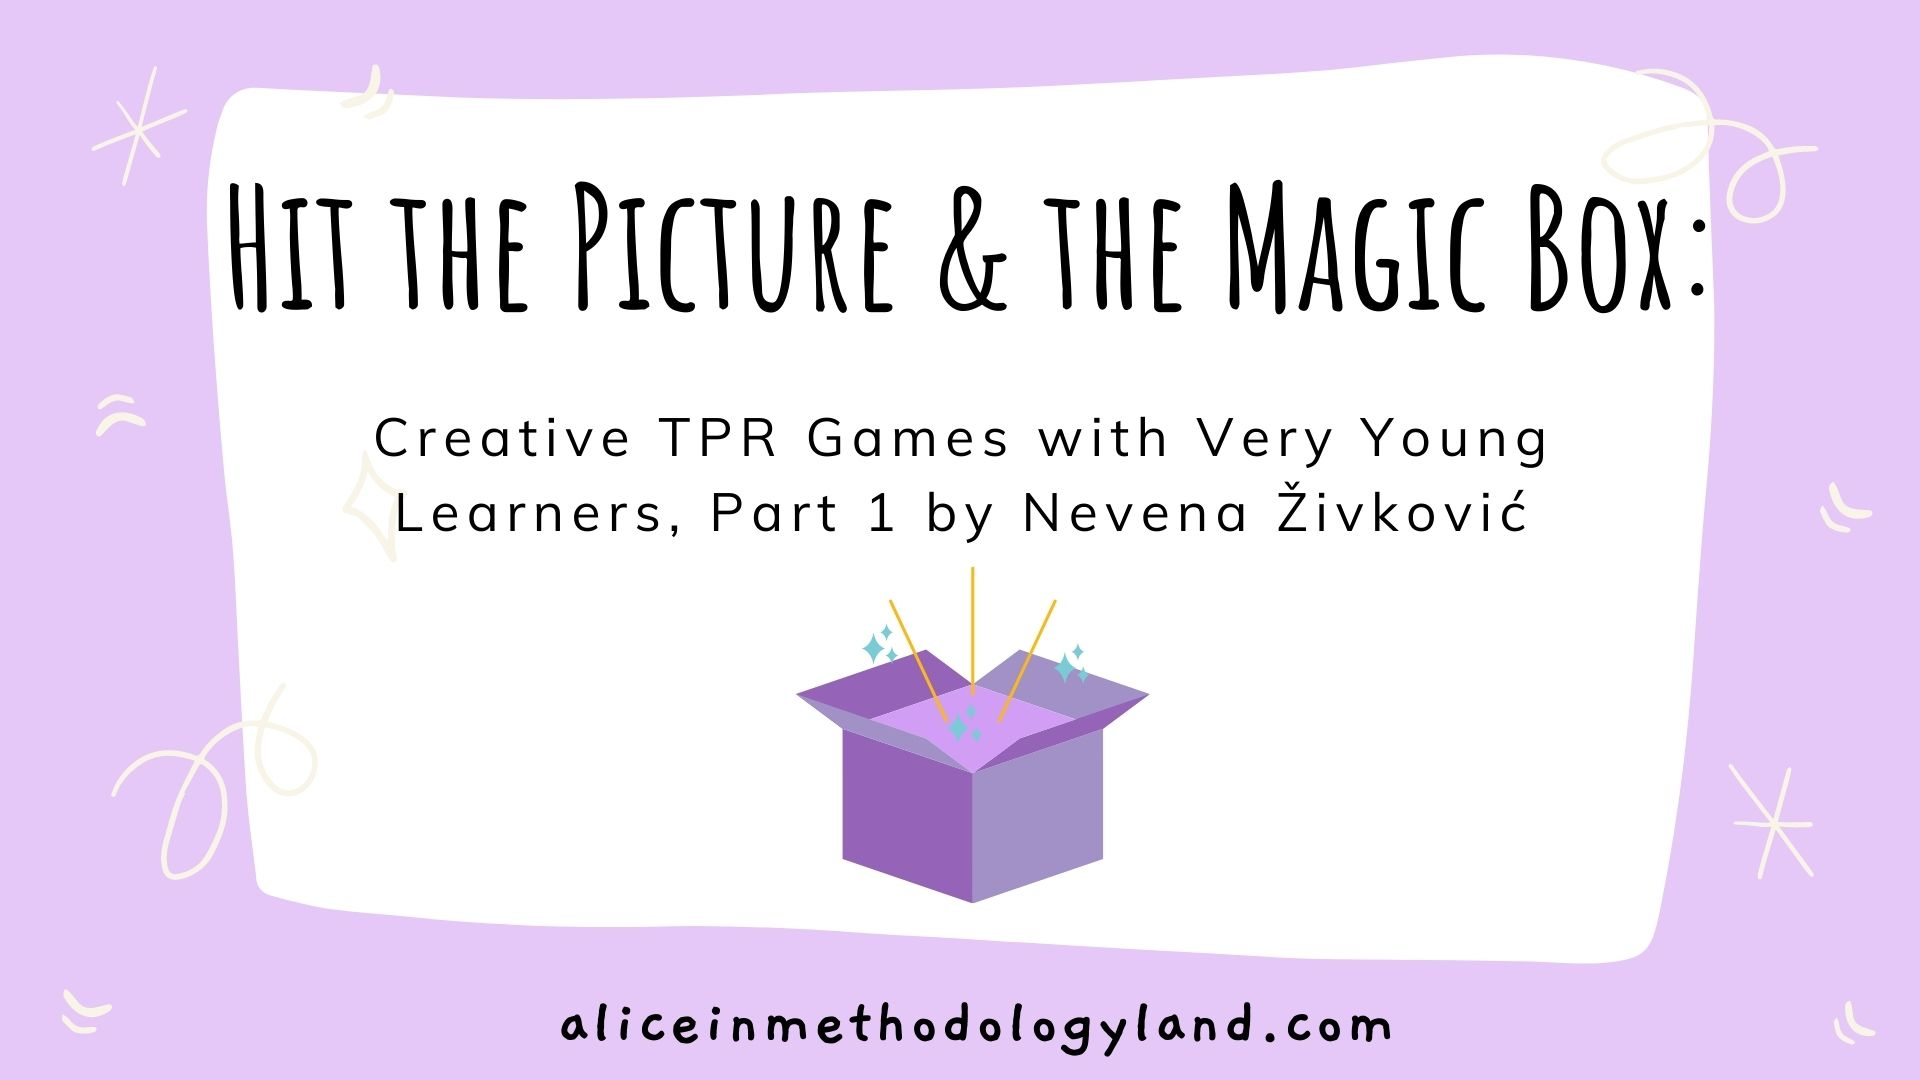 Hit the Picture & the Magic Box: Creative TPR Games with Very Young Learners, Part 1 by Nevena Živković